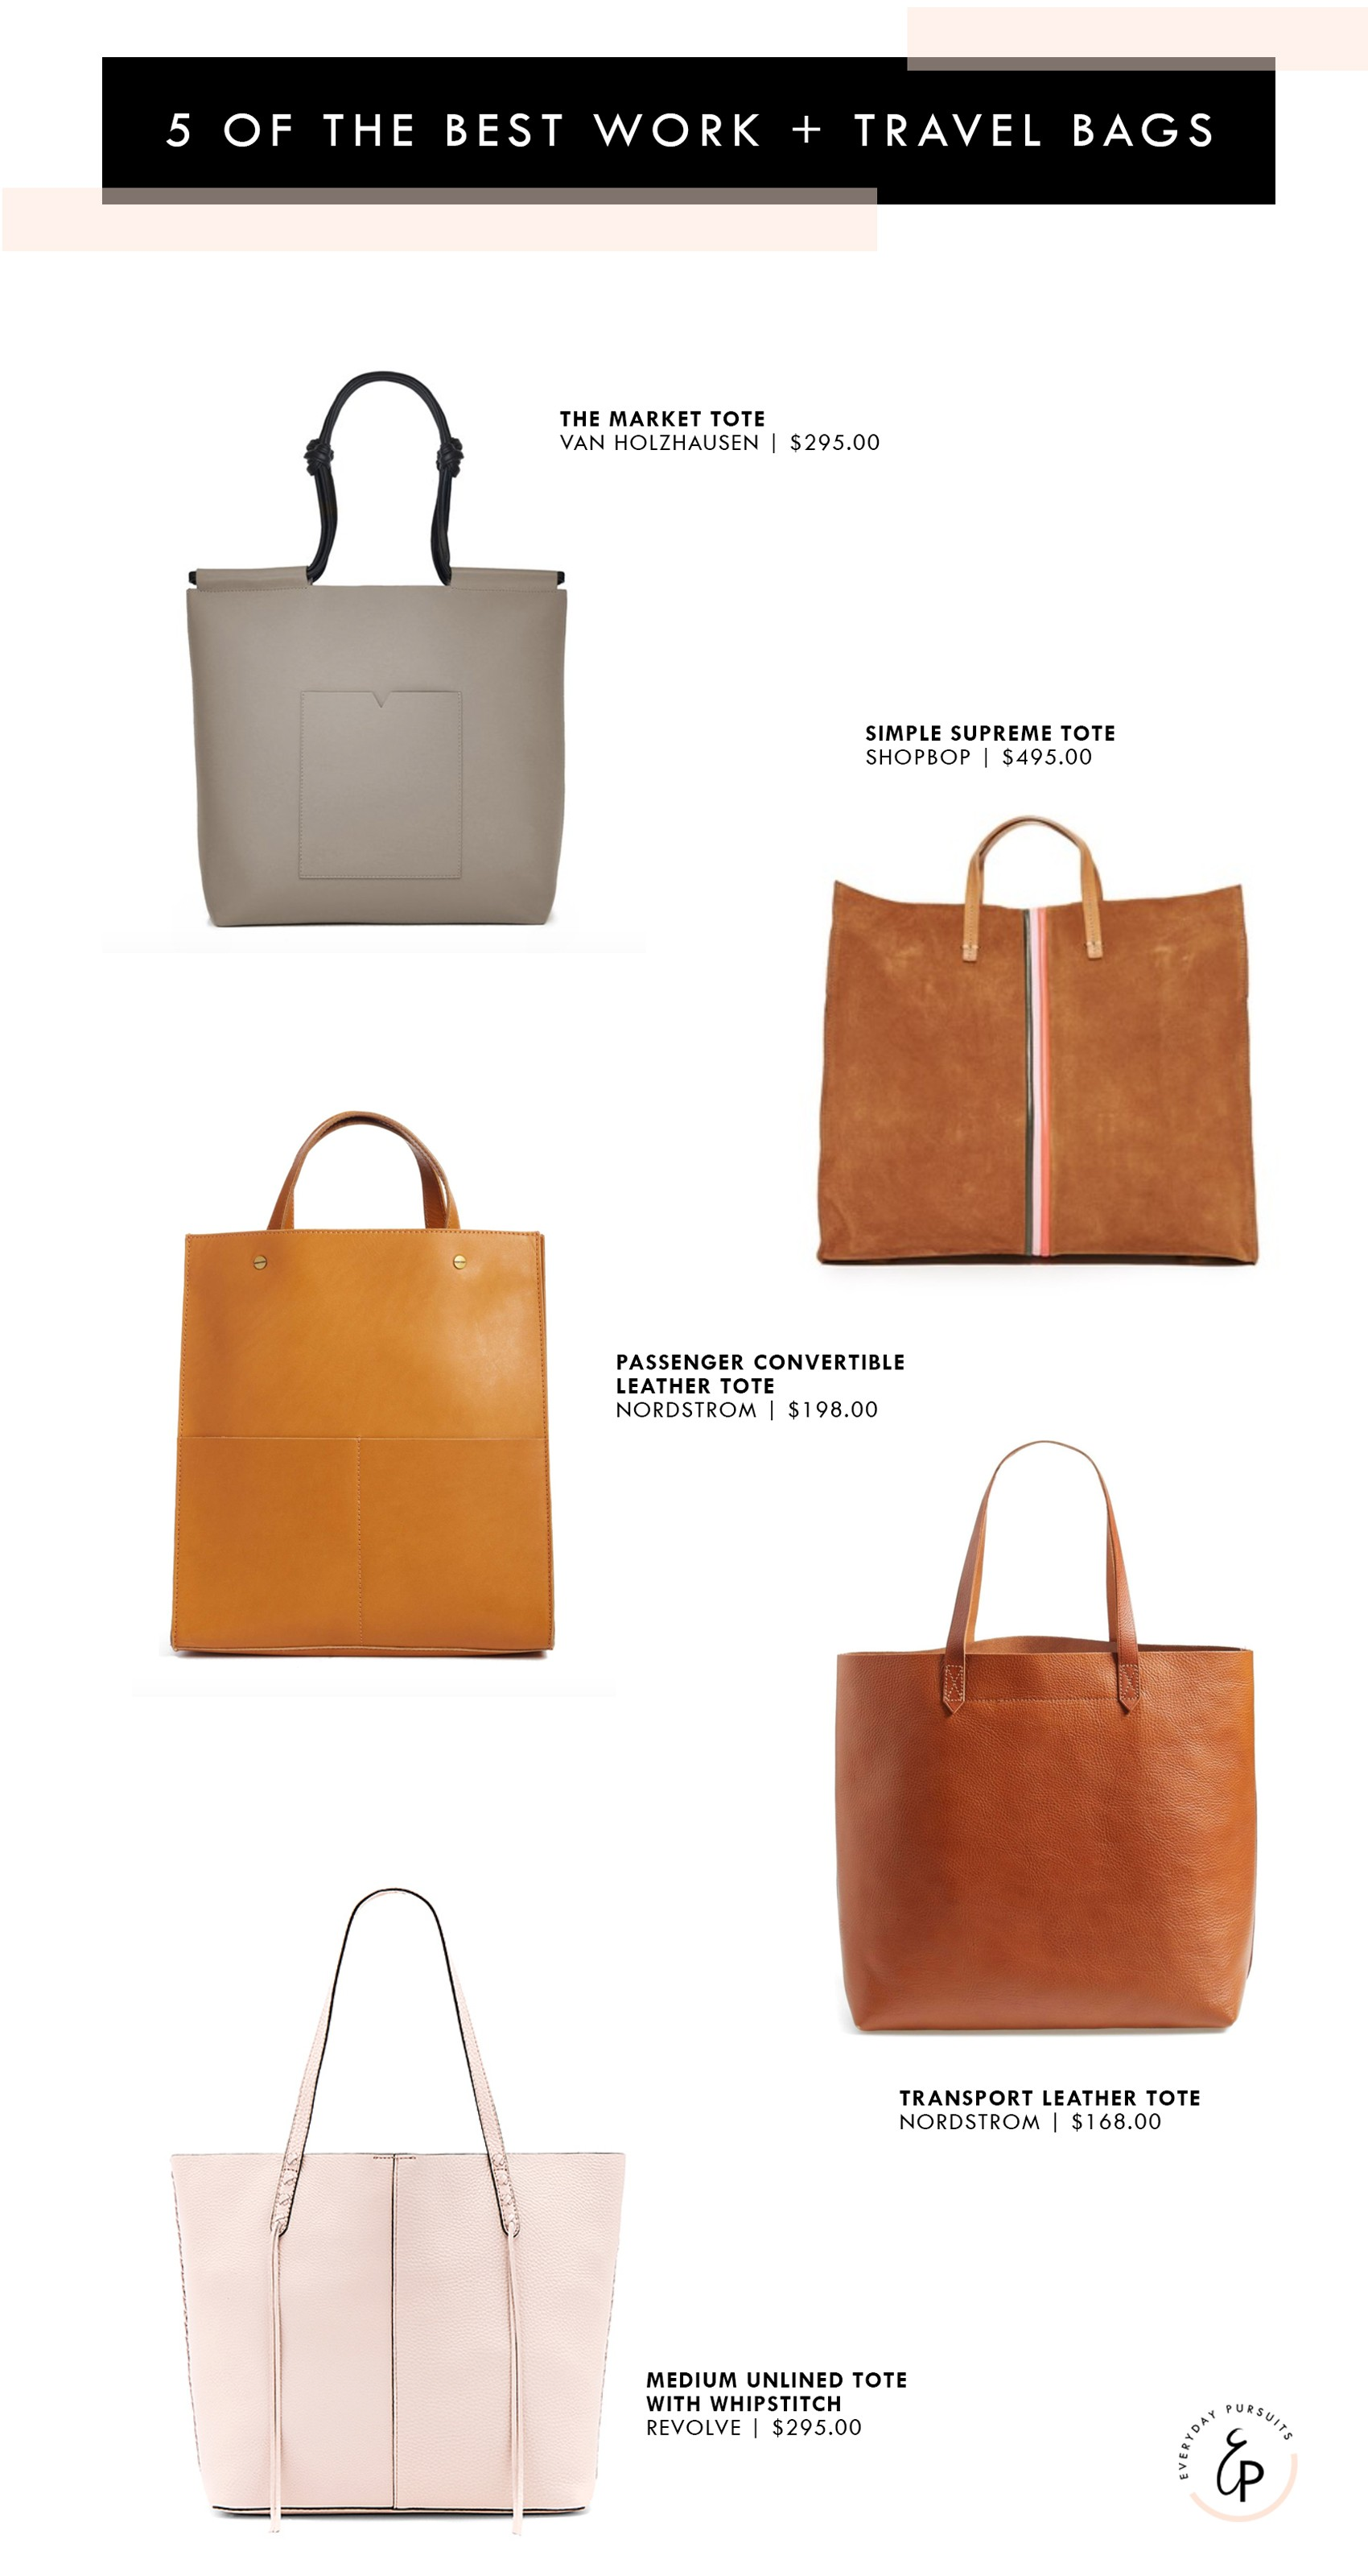 5869a0160988 Von Holzhausen Market Tote | Clare V Supreme Tote | Madewell Passenger Leather  Tote | Madewell Transport Leather Tote | Rebecca Minkoff Tote